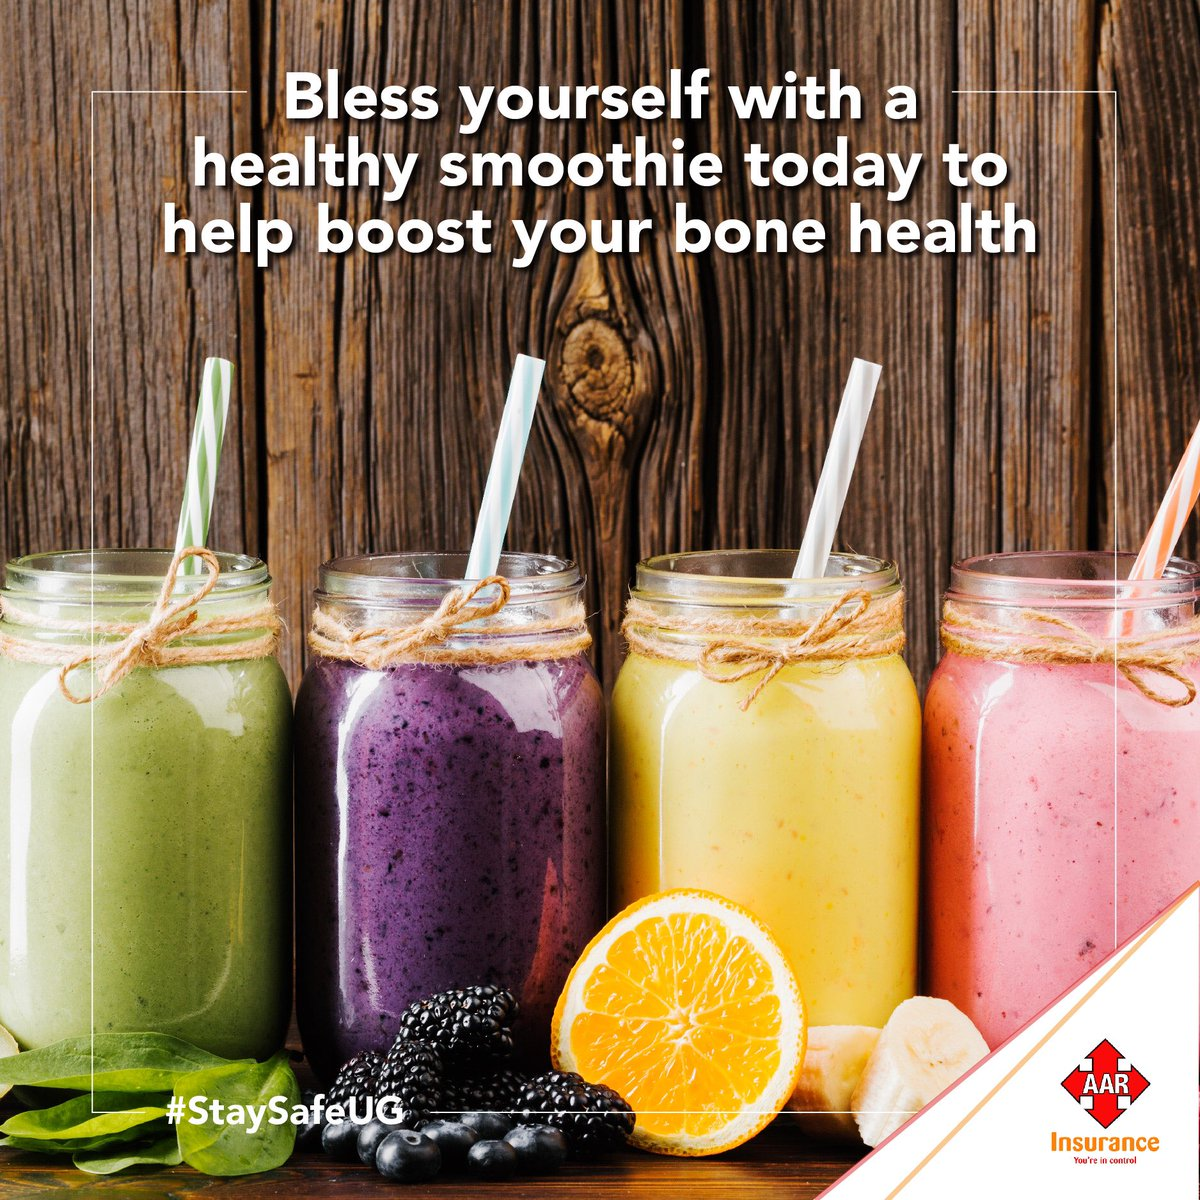 Detox with a smoothie and live healthy. Add carrots, beetroot, broccoli, cucumber, ginger and apple to your smoothie. They contain calcium Vitamin D3 and K that help to improve bone health and strength. <br>http://pic.twitter.com/IyF5RNg33e